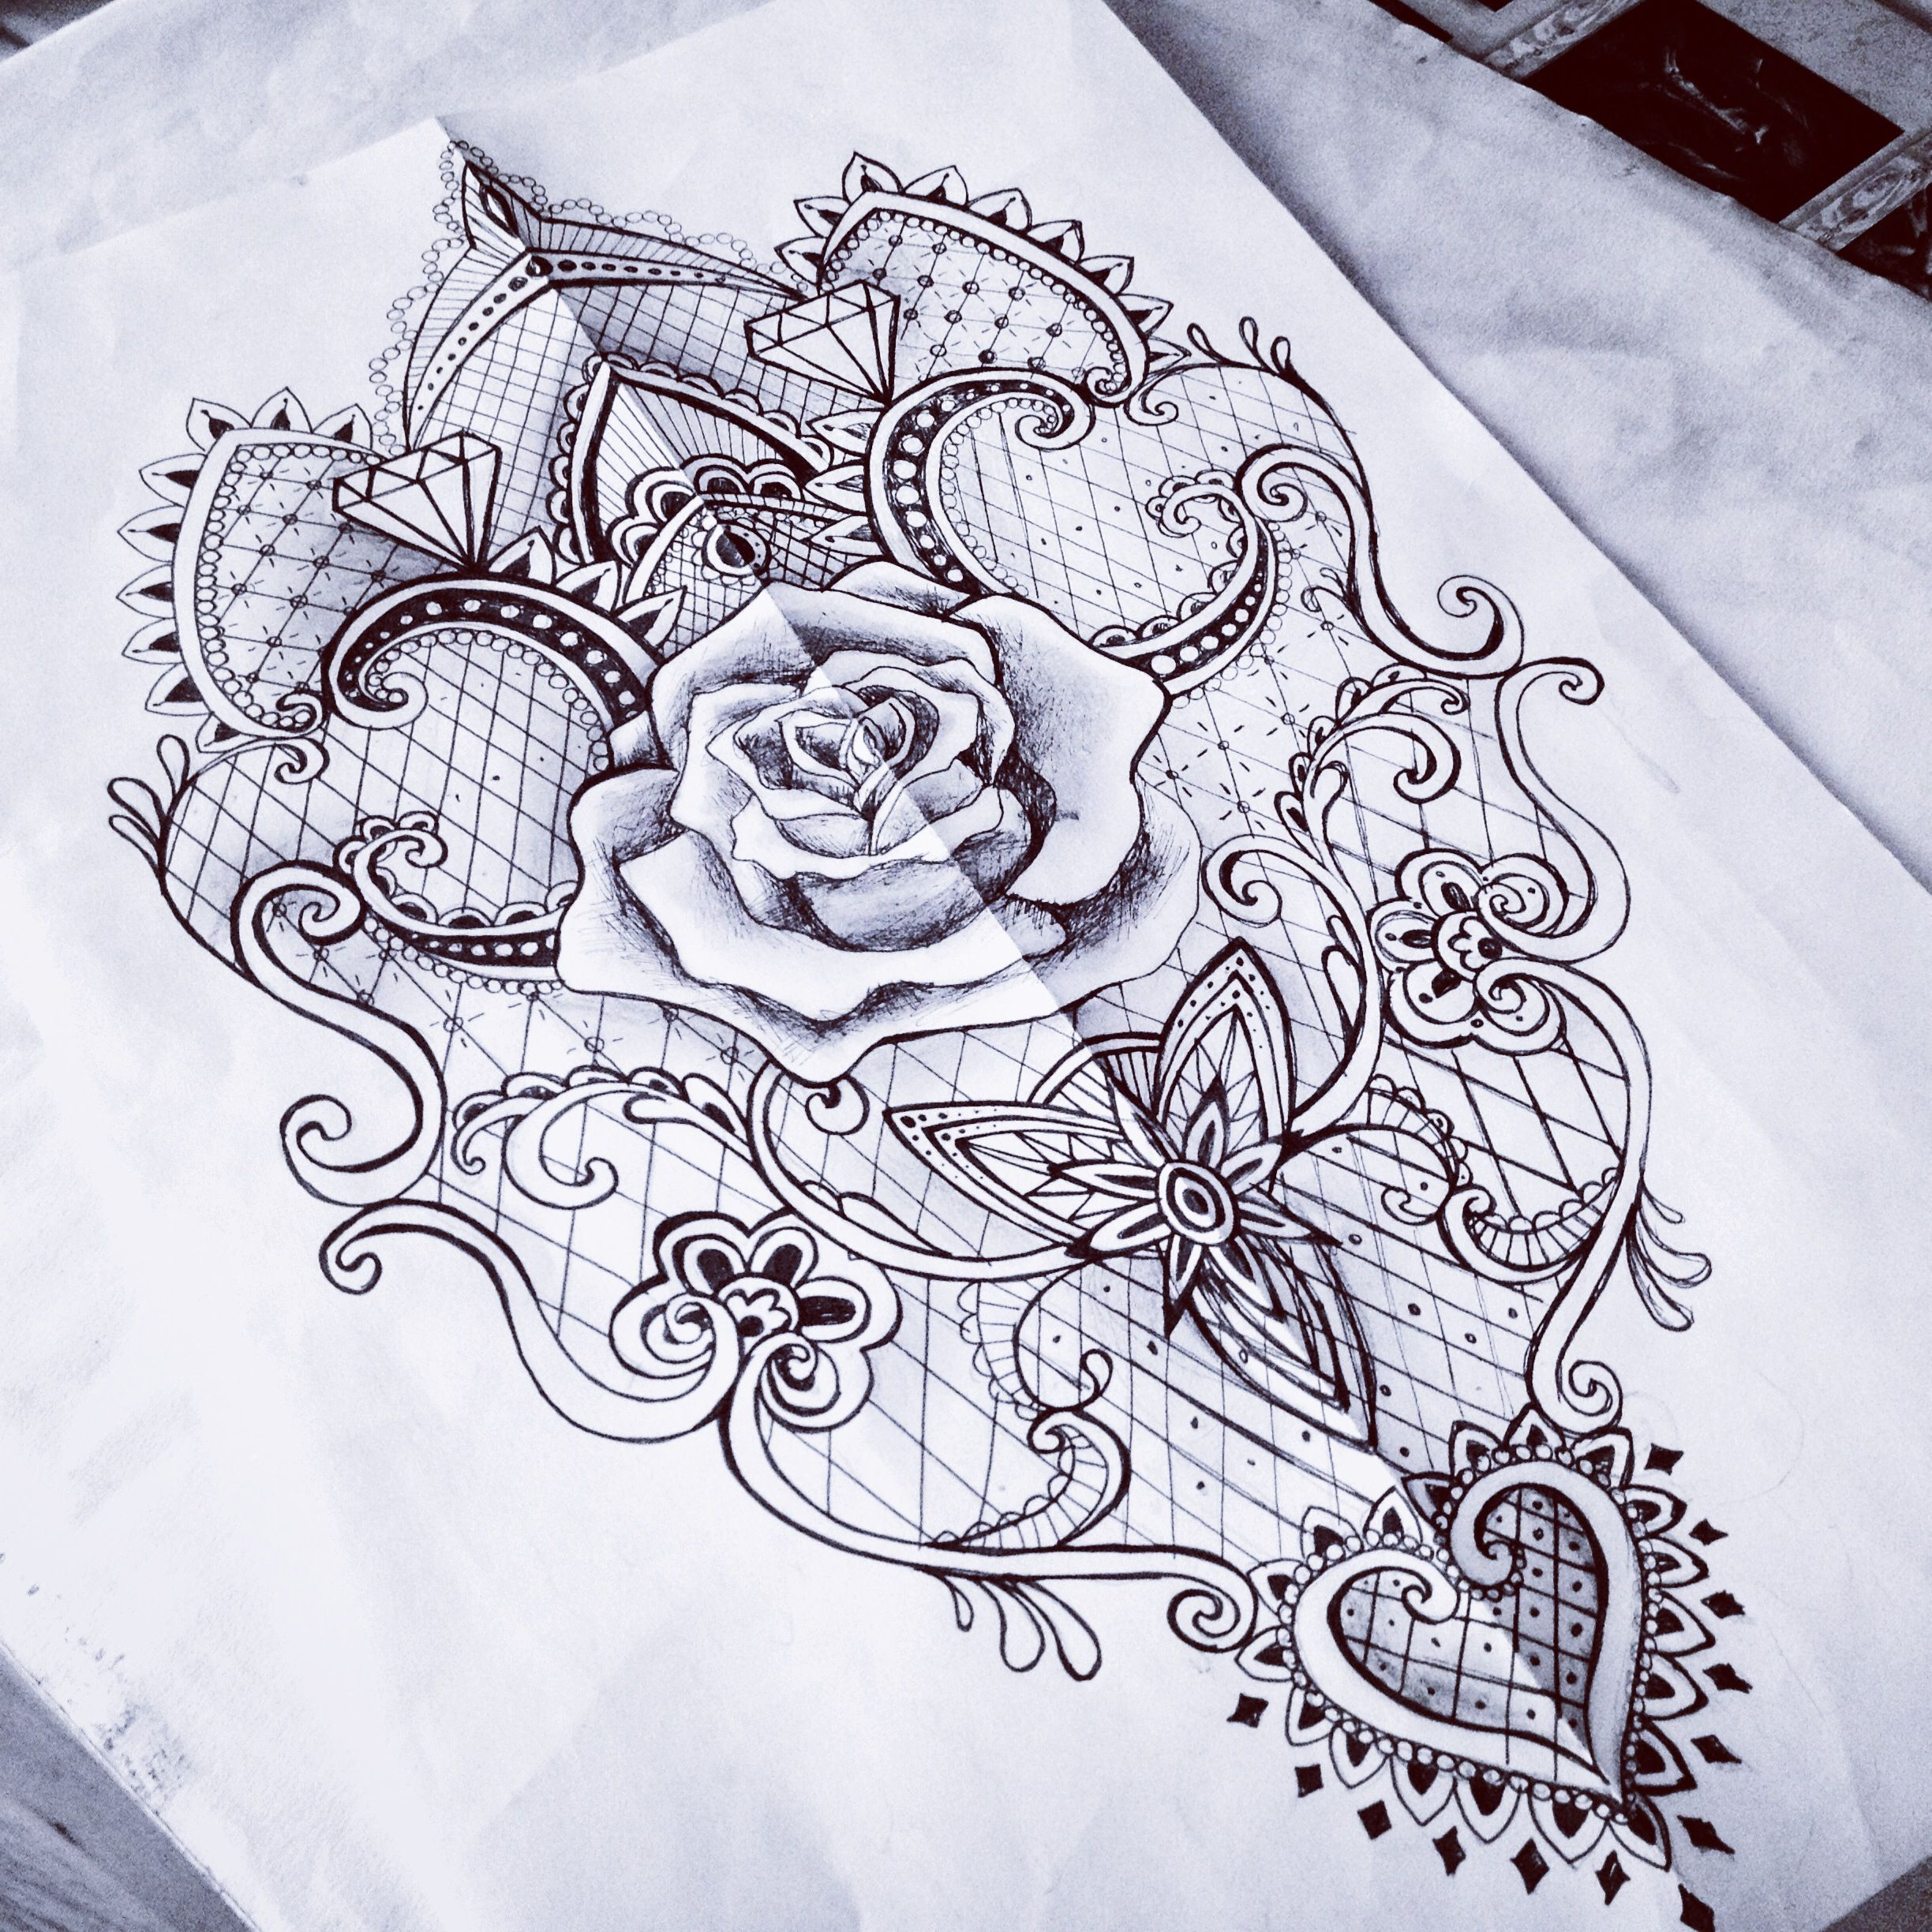 lace rose baroque mantra tattoo sketch woman something like this on your back tattoos. Black Bedroom Furniture Sets. Home Design Ideas